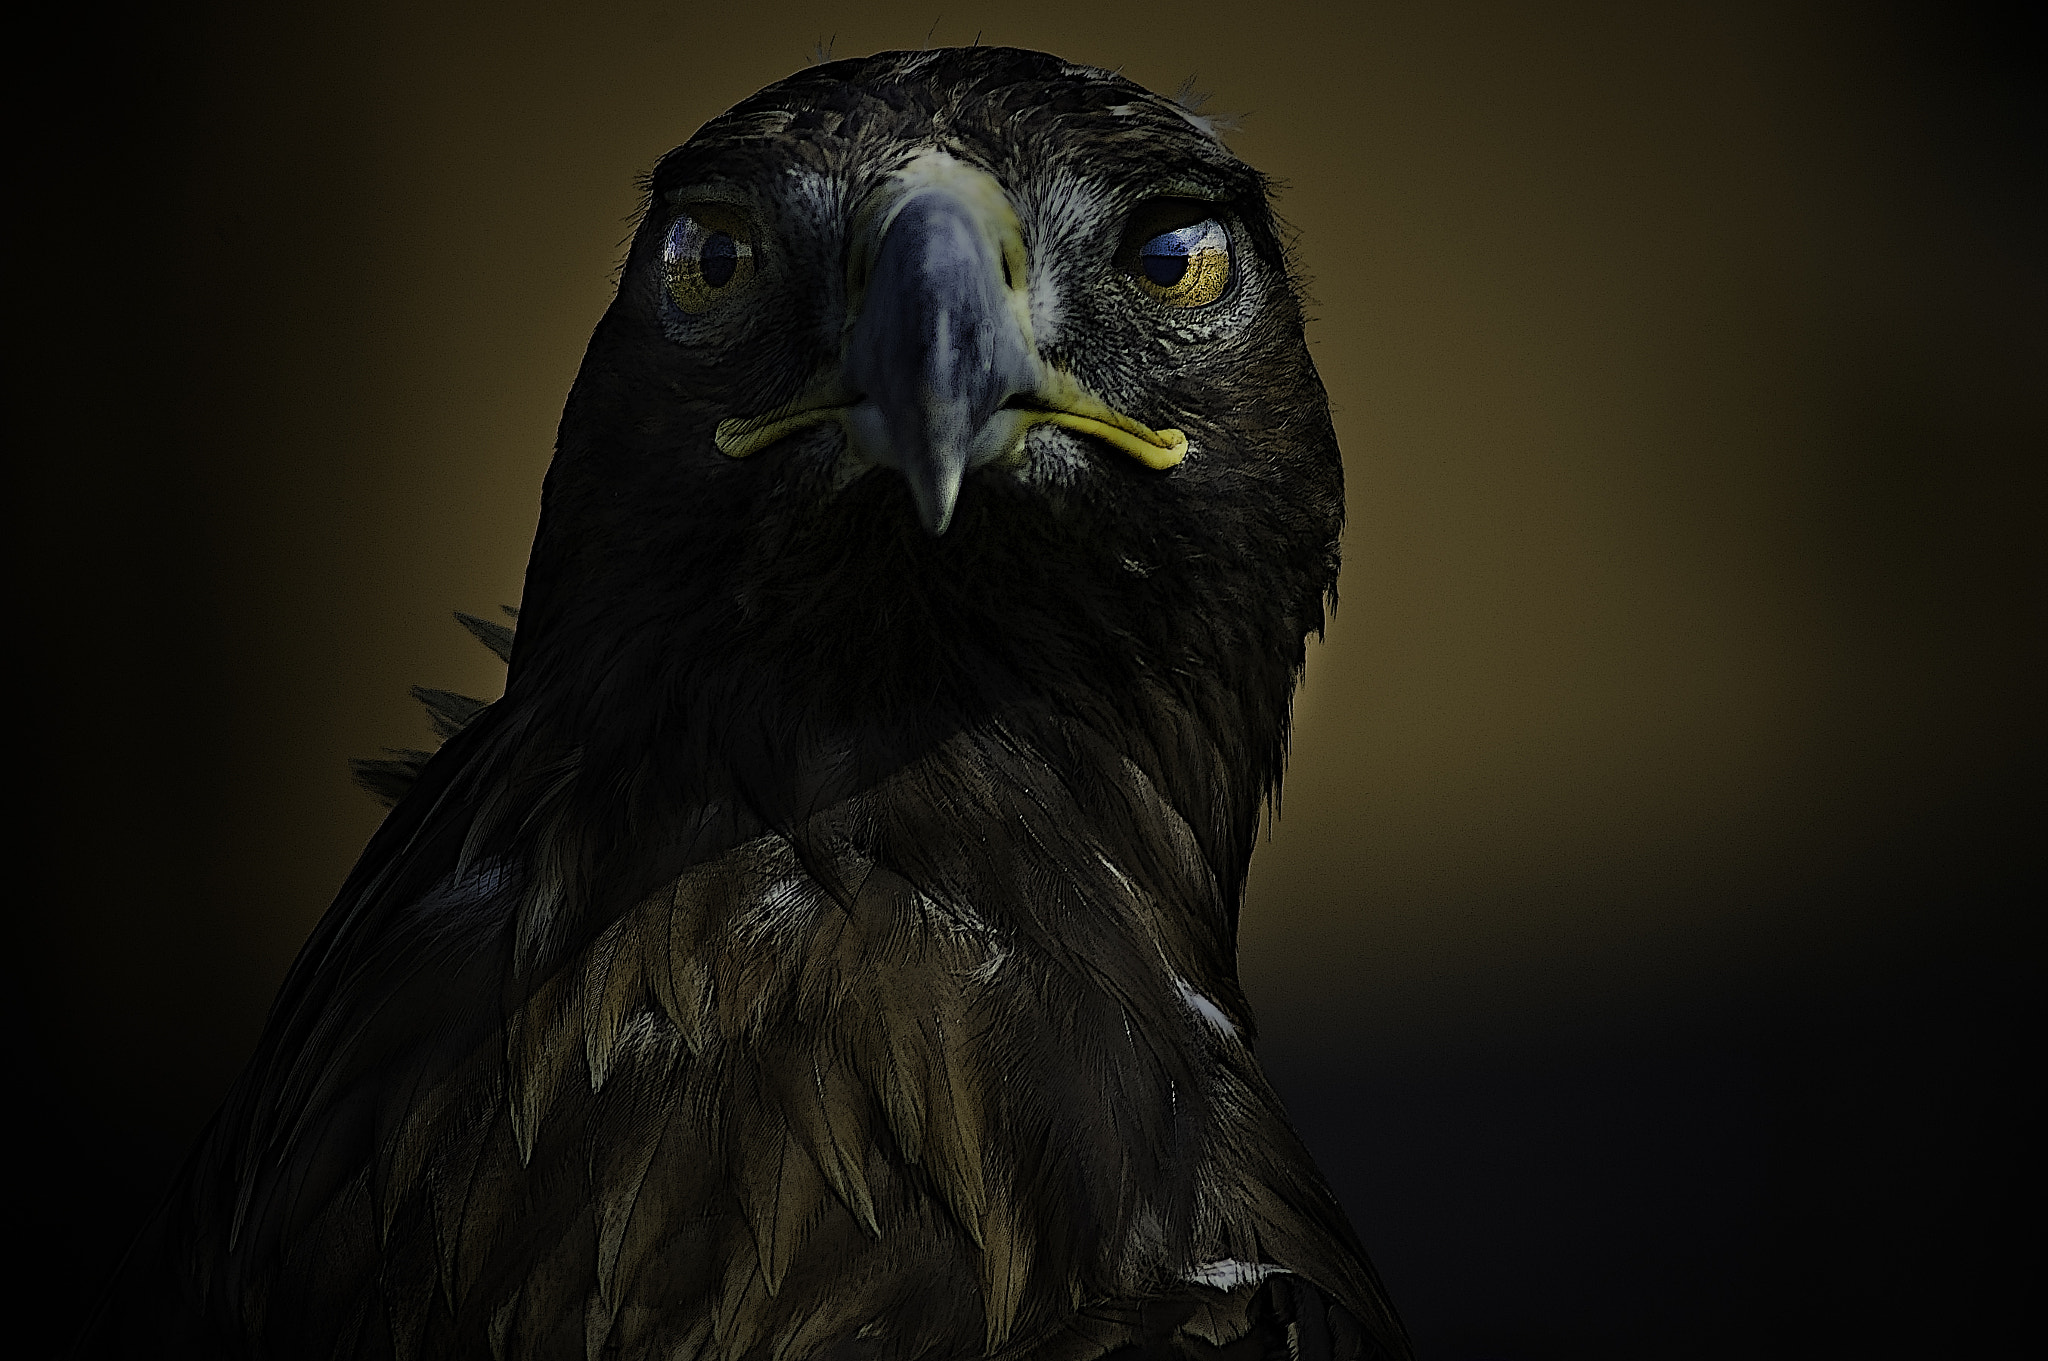 Photograph Portrait of a Golden eagle by Paco López on 500px